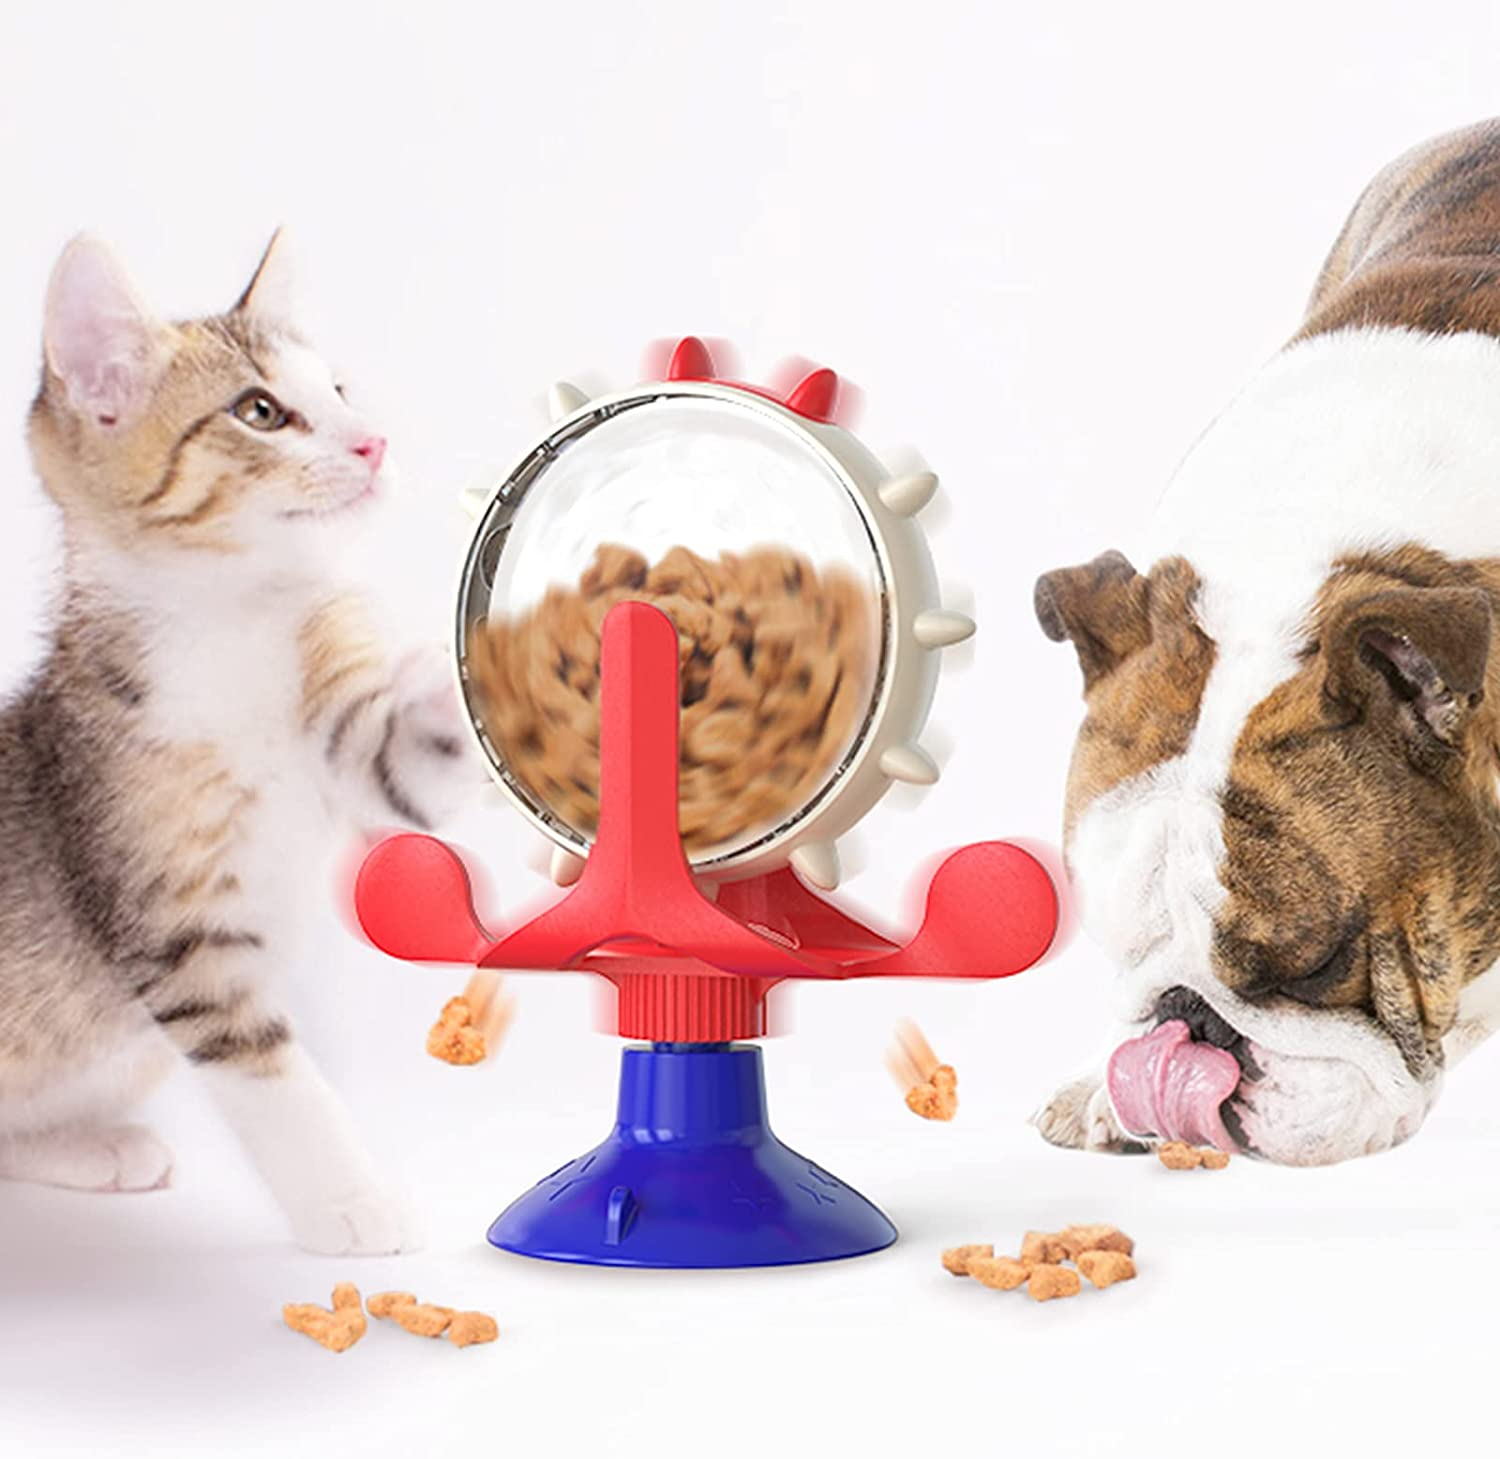 XIAOGO Cat Toys Cats Supplies Kitten Toy Interactive Slow Feeder with Suction Cup Portable Whirling Food Dispenser Funny Puzzle Kitty for Indoor Cats Improve IQ